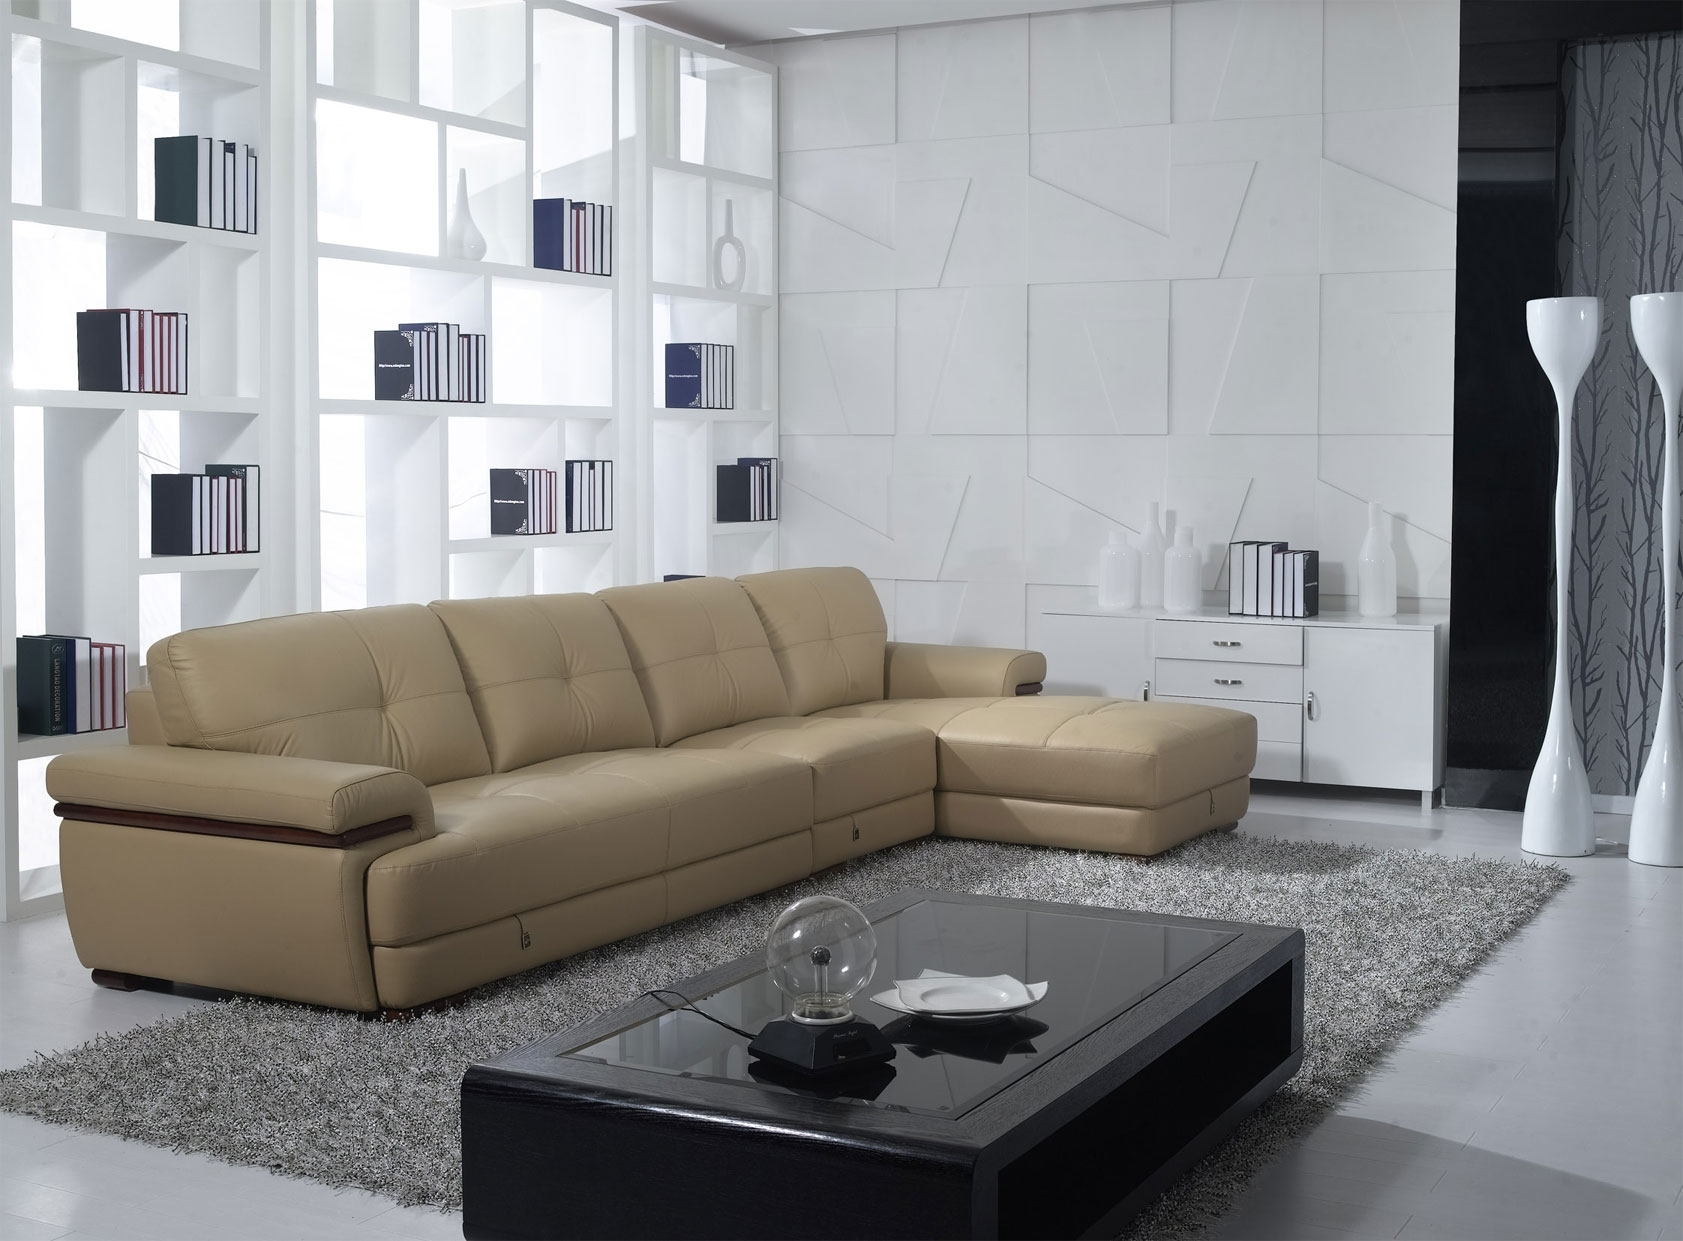 Fancy Quality Sectional Sofas 15 Sofas And Couches Ideas With In High Quality Sectional Sofas (View 3 of 10)